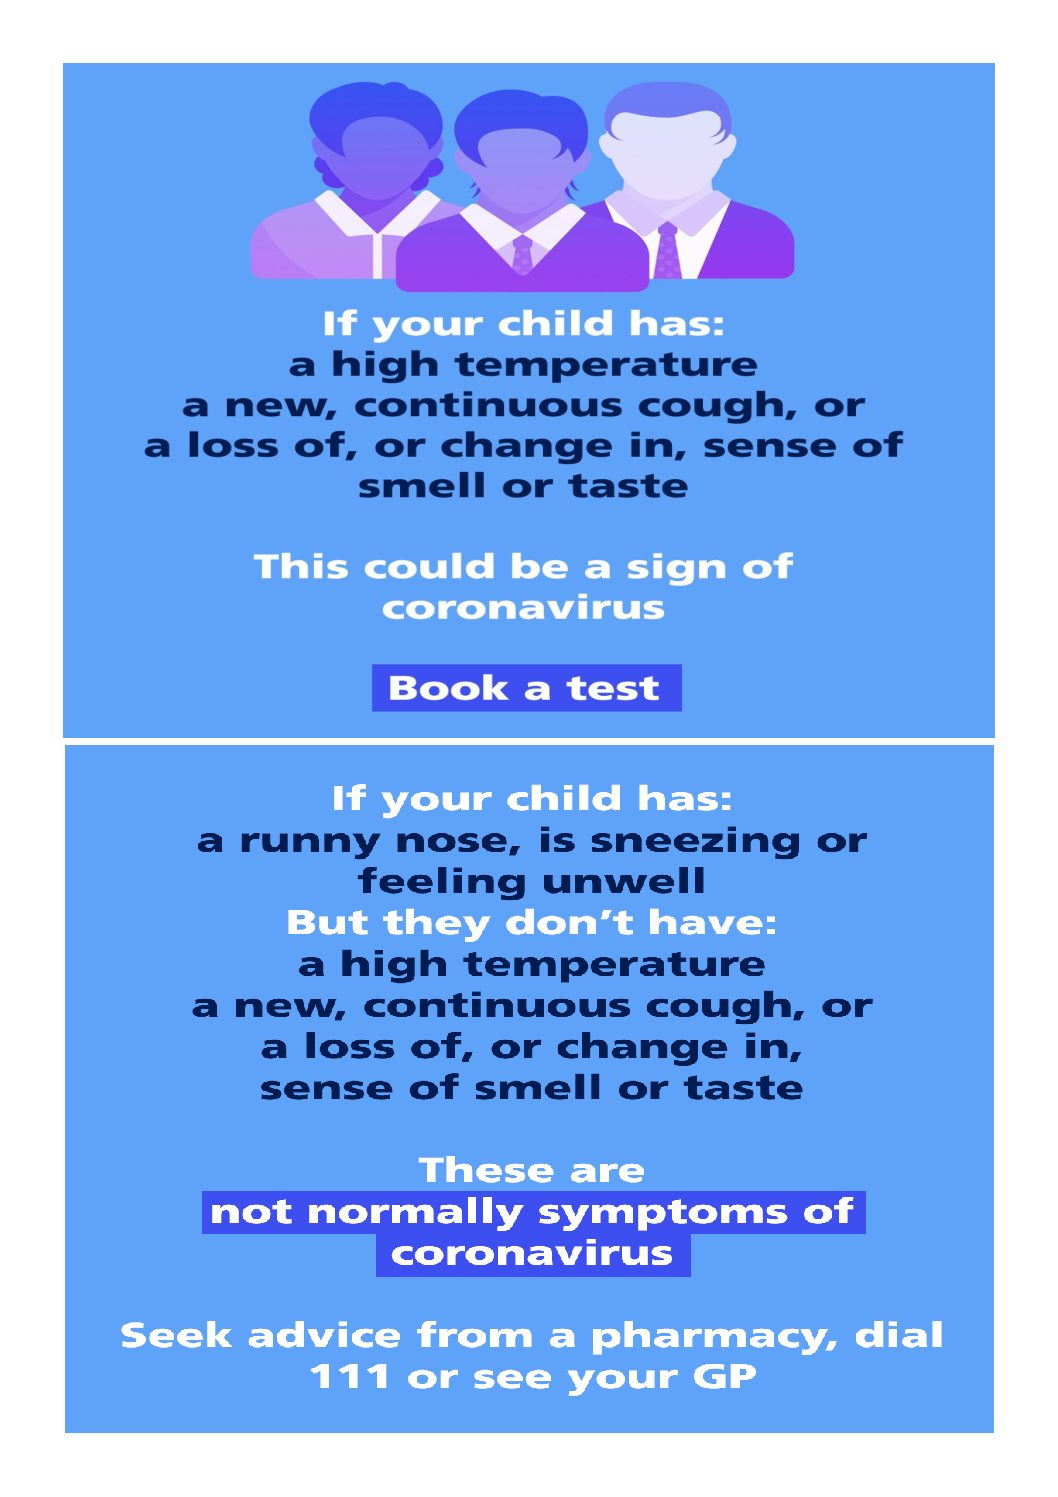 Letter for parents about COVID-19 symptoms